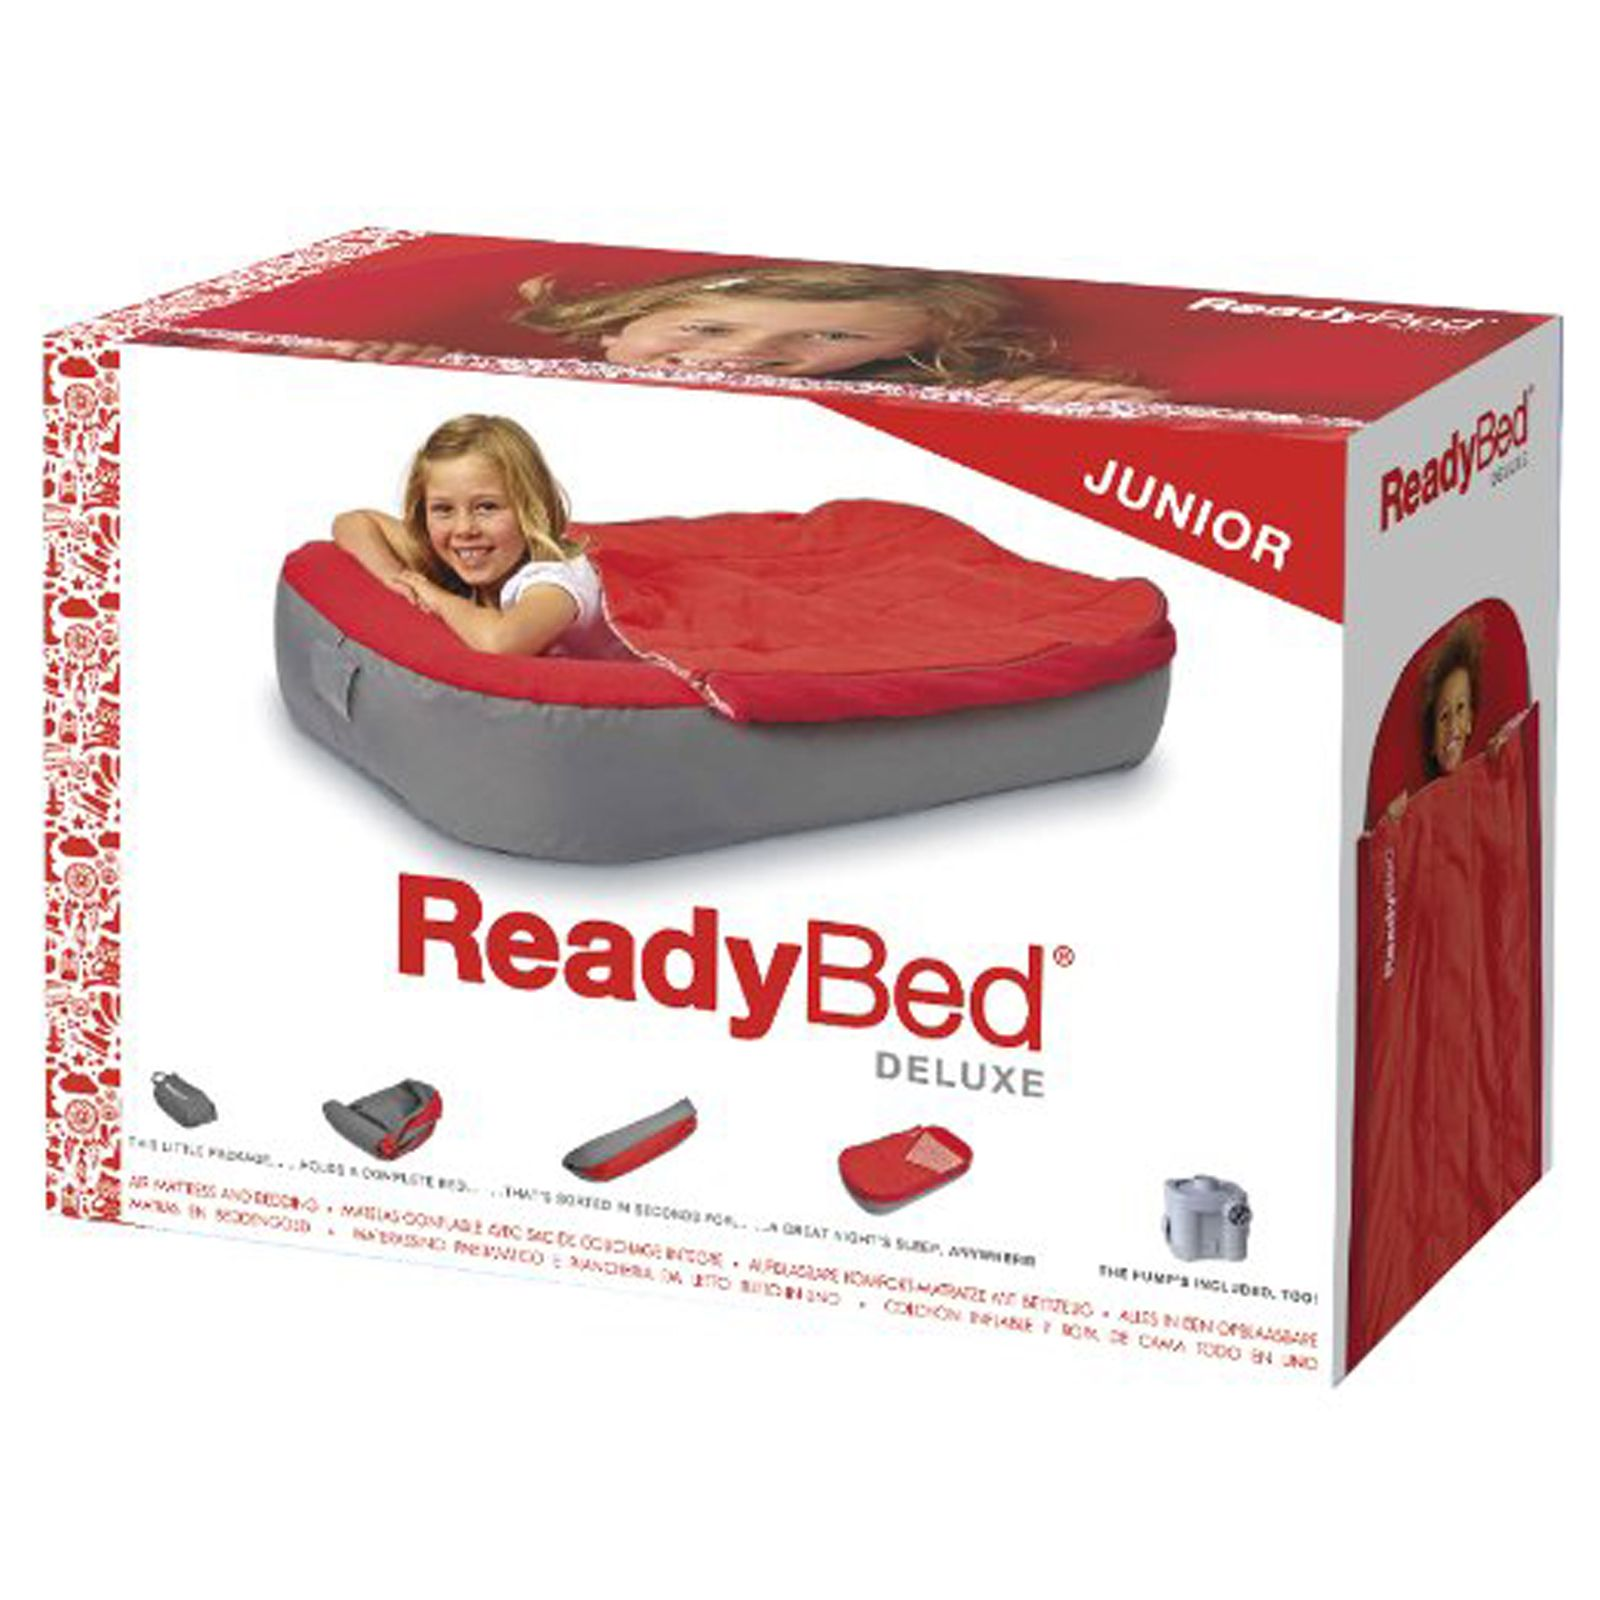 Inflatable Bed Netherlands: WORLDS APART DELUXE Junior Ready Bed With Pump Inflatable